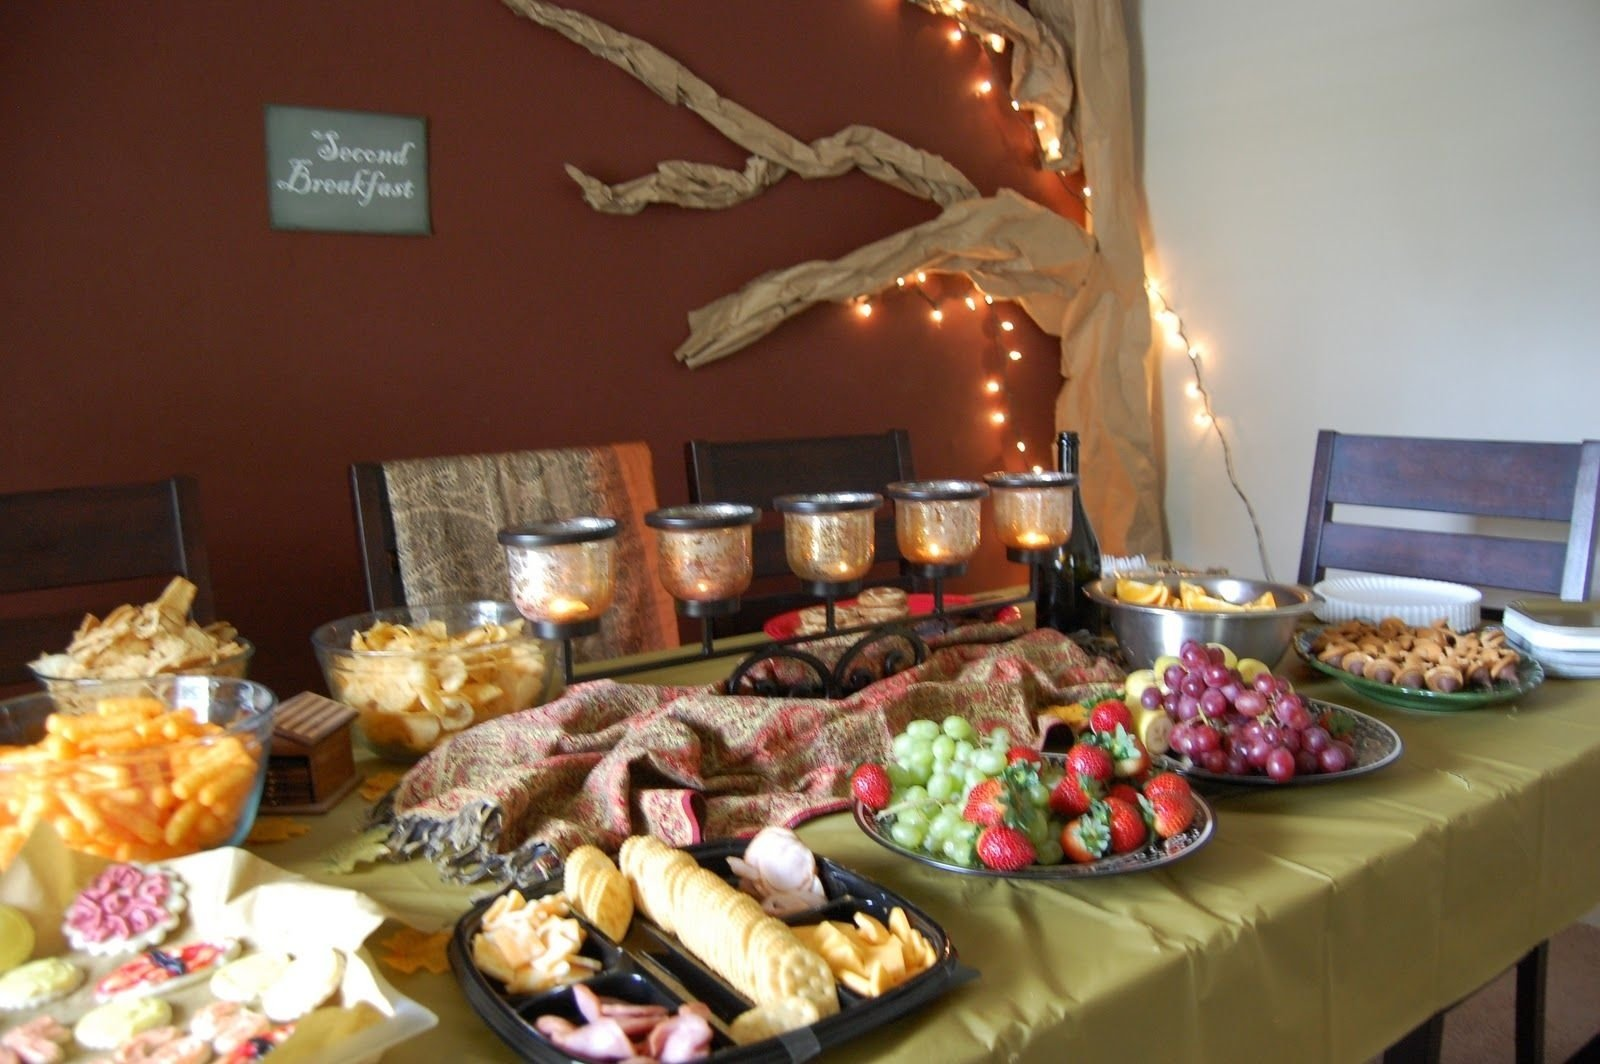 10 Pretty Lord Of The Rings Party Ideas decorations for lord of the rings party love the 2nd breakfast 2020